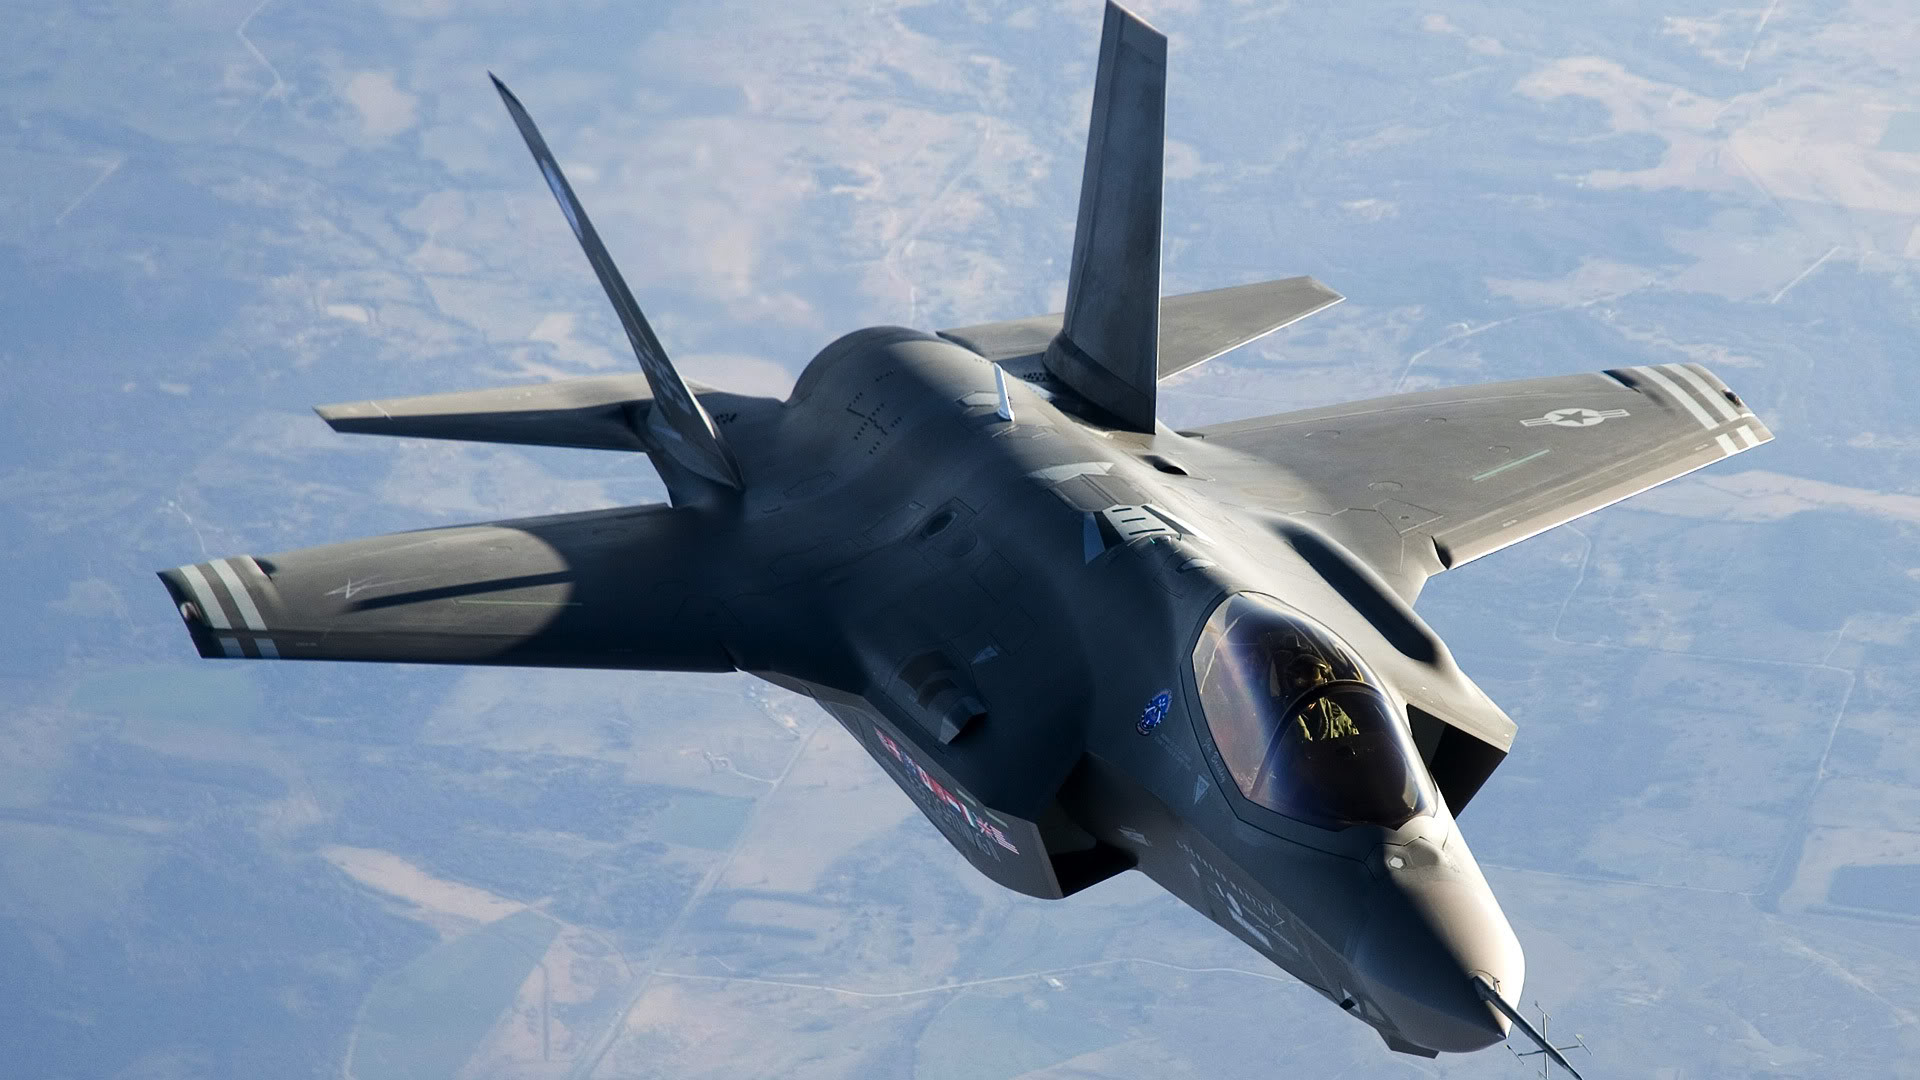 http://someinterestingfacts.net/wp-content/uploads/2013/01/F-35-Lightning-II.jpg